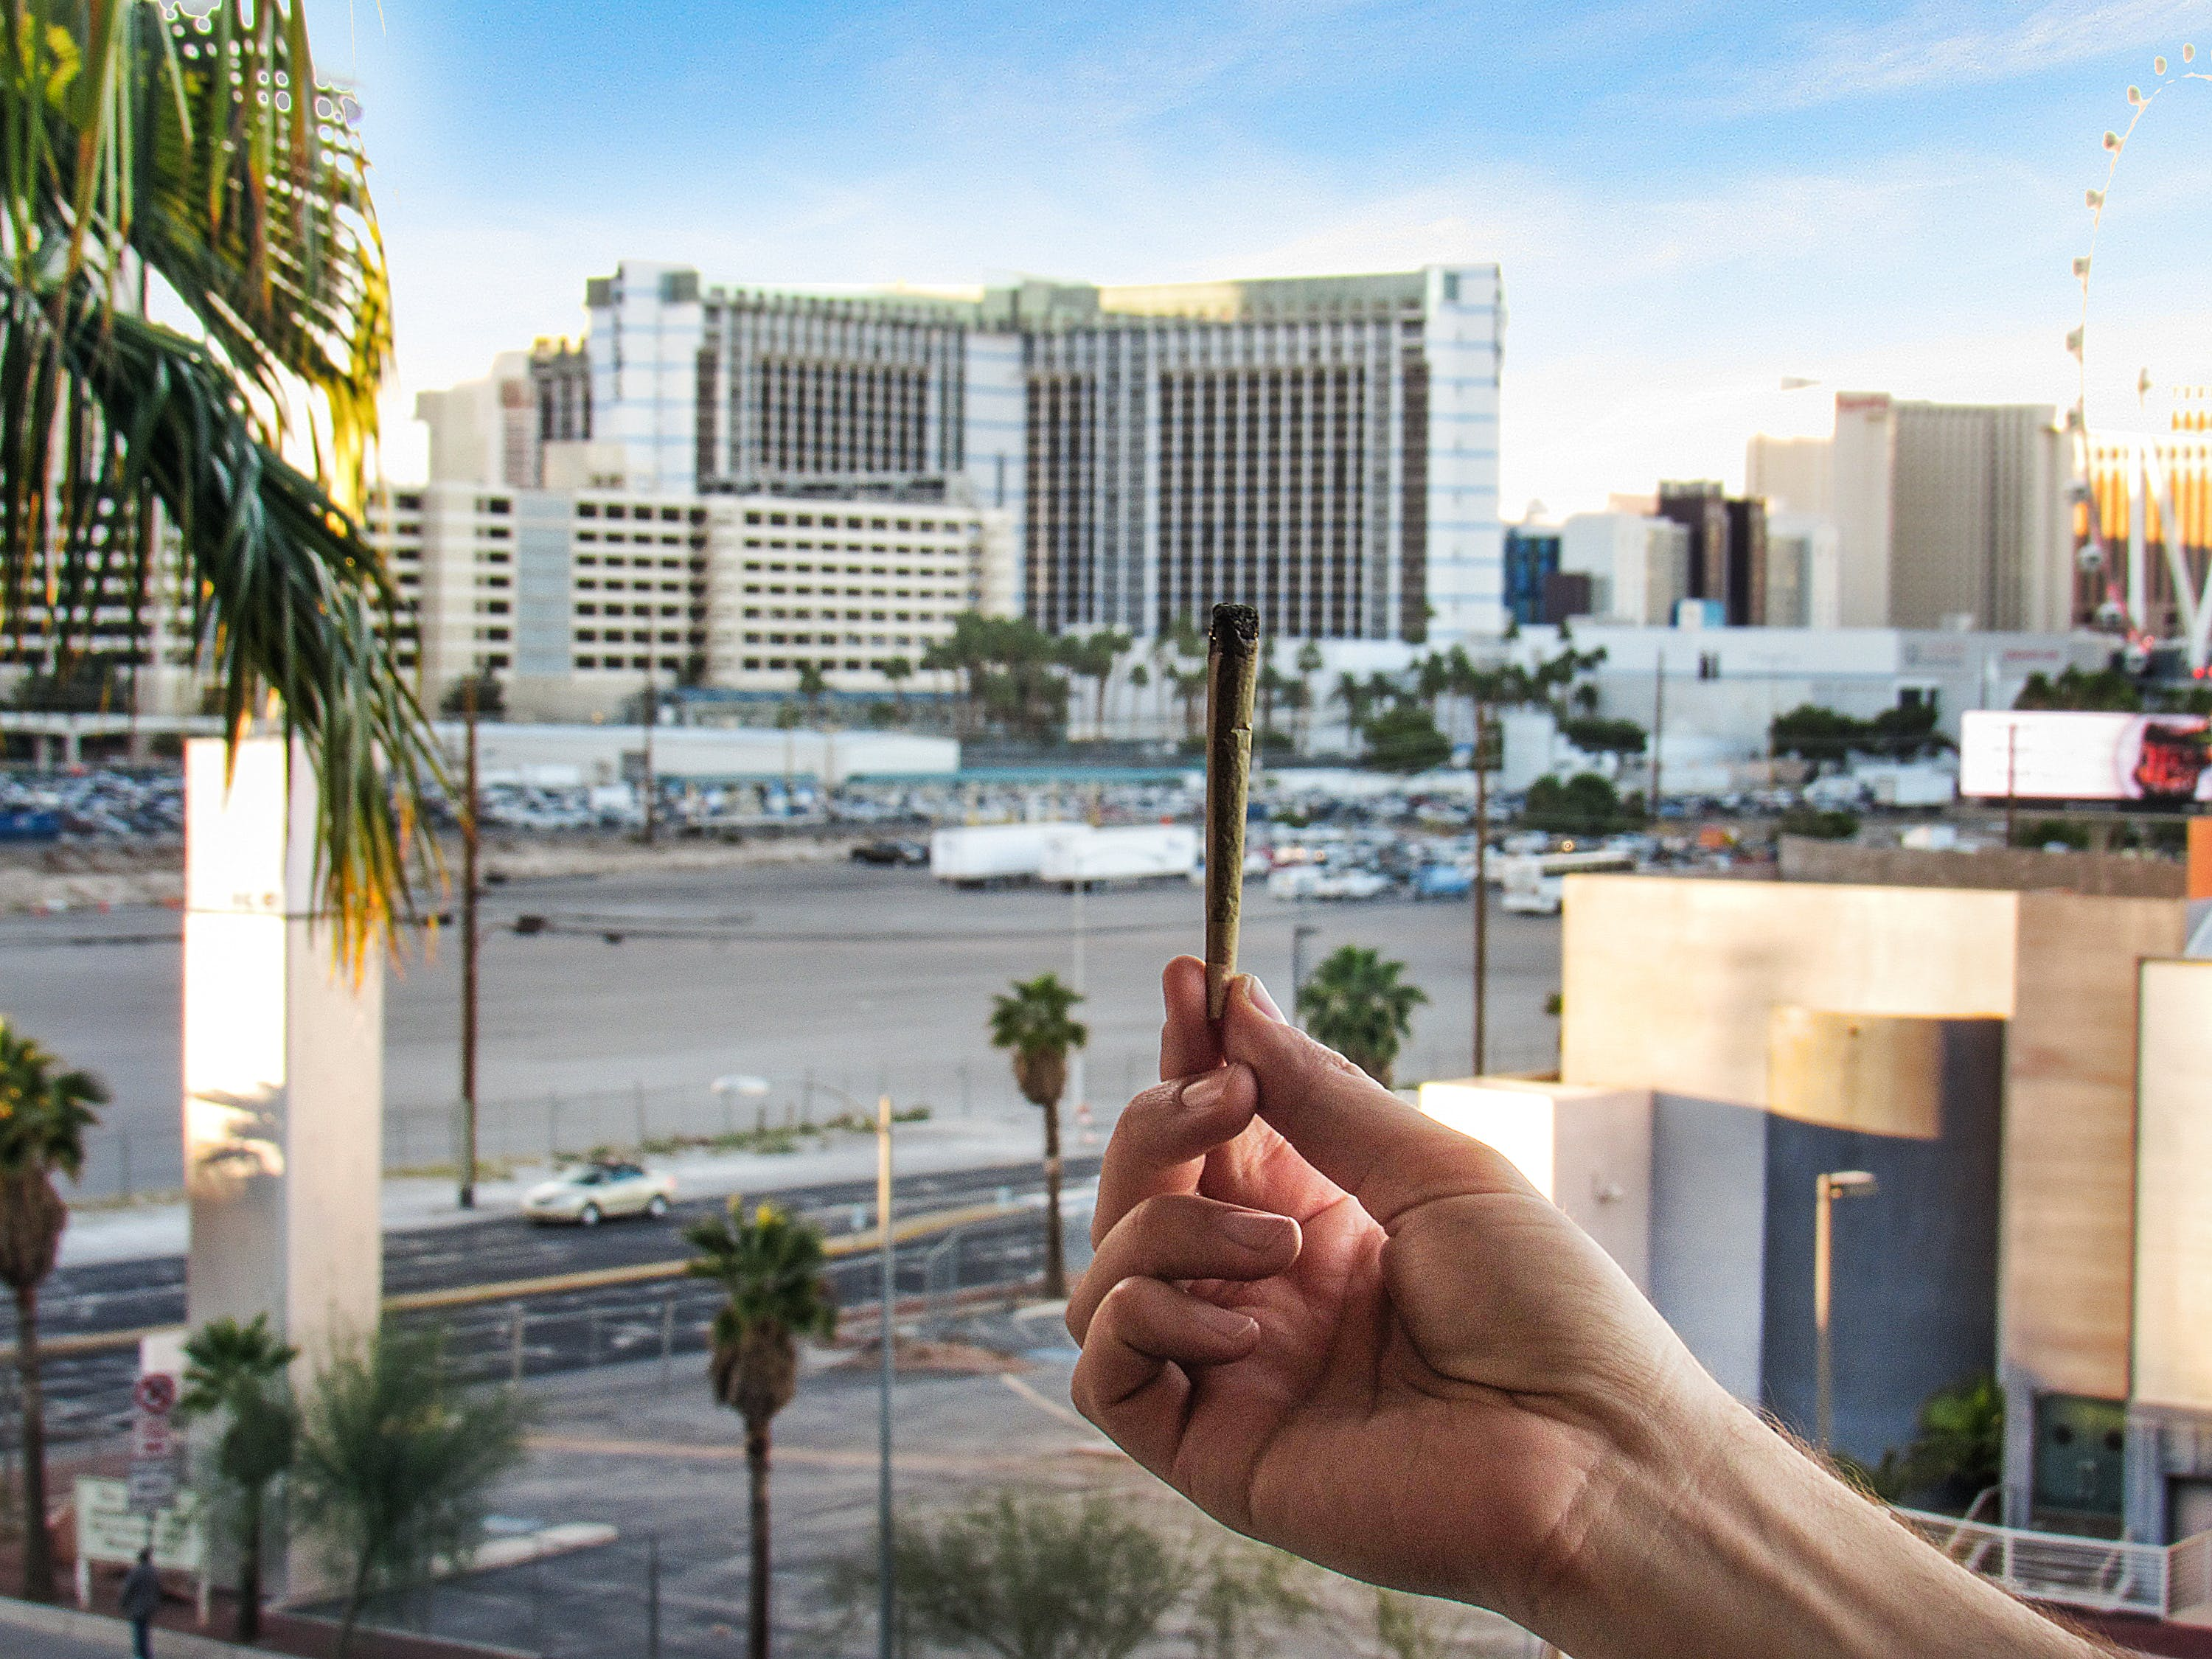 Recreational Pot in Southern Nevada Just Levelled Up 2 of 4 How to use weed for jamming and listening to music